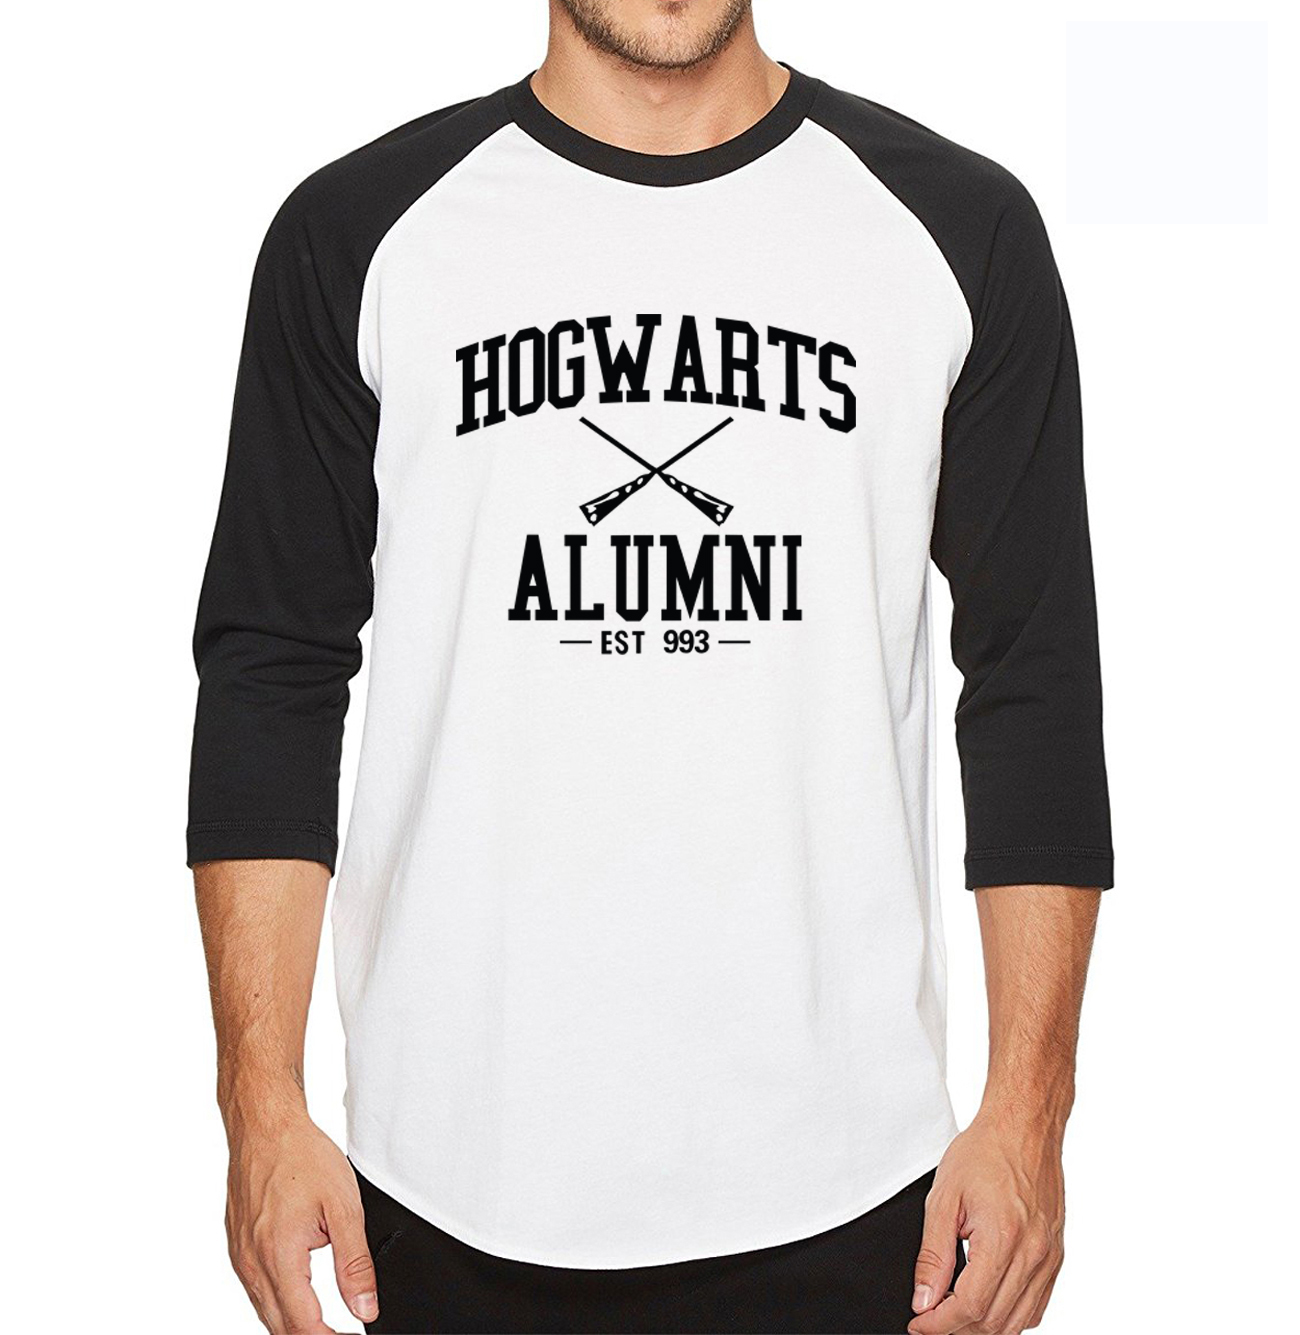 2018 summer Hogwarts Inspired Magic Alumni raglan t shirts men 100% cotton 3/4 sleeve men t-shirt movie fans Camisetas Hombre